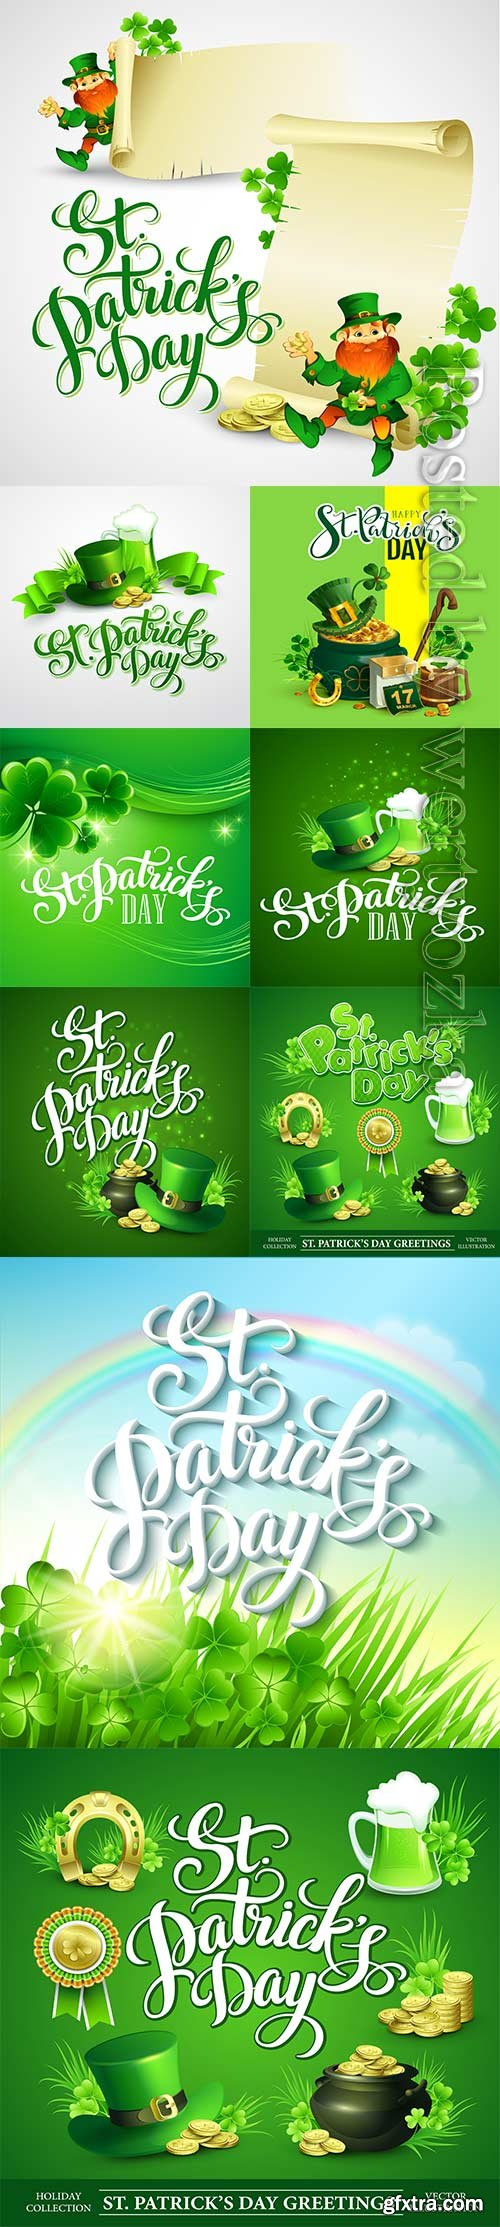 Happy saint patricks day greeting lettering vector background